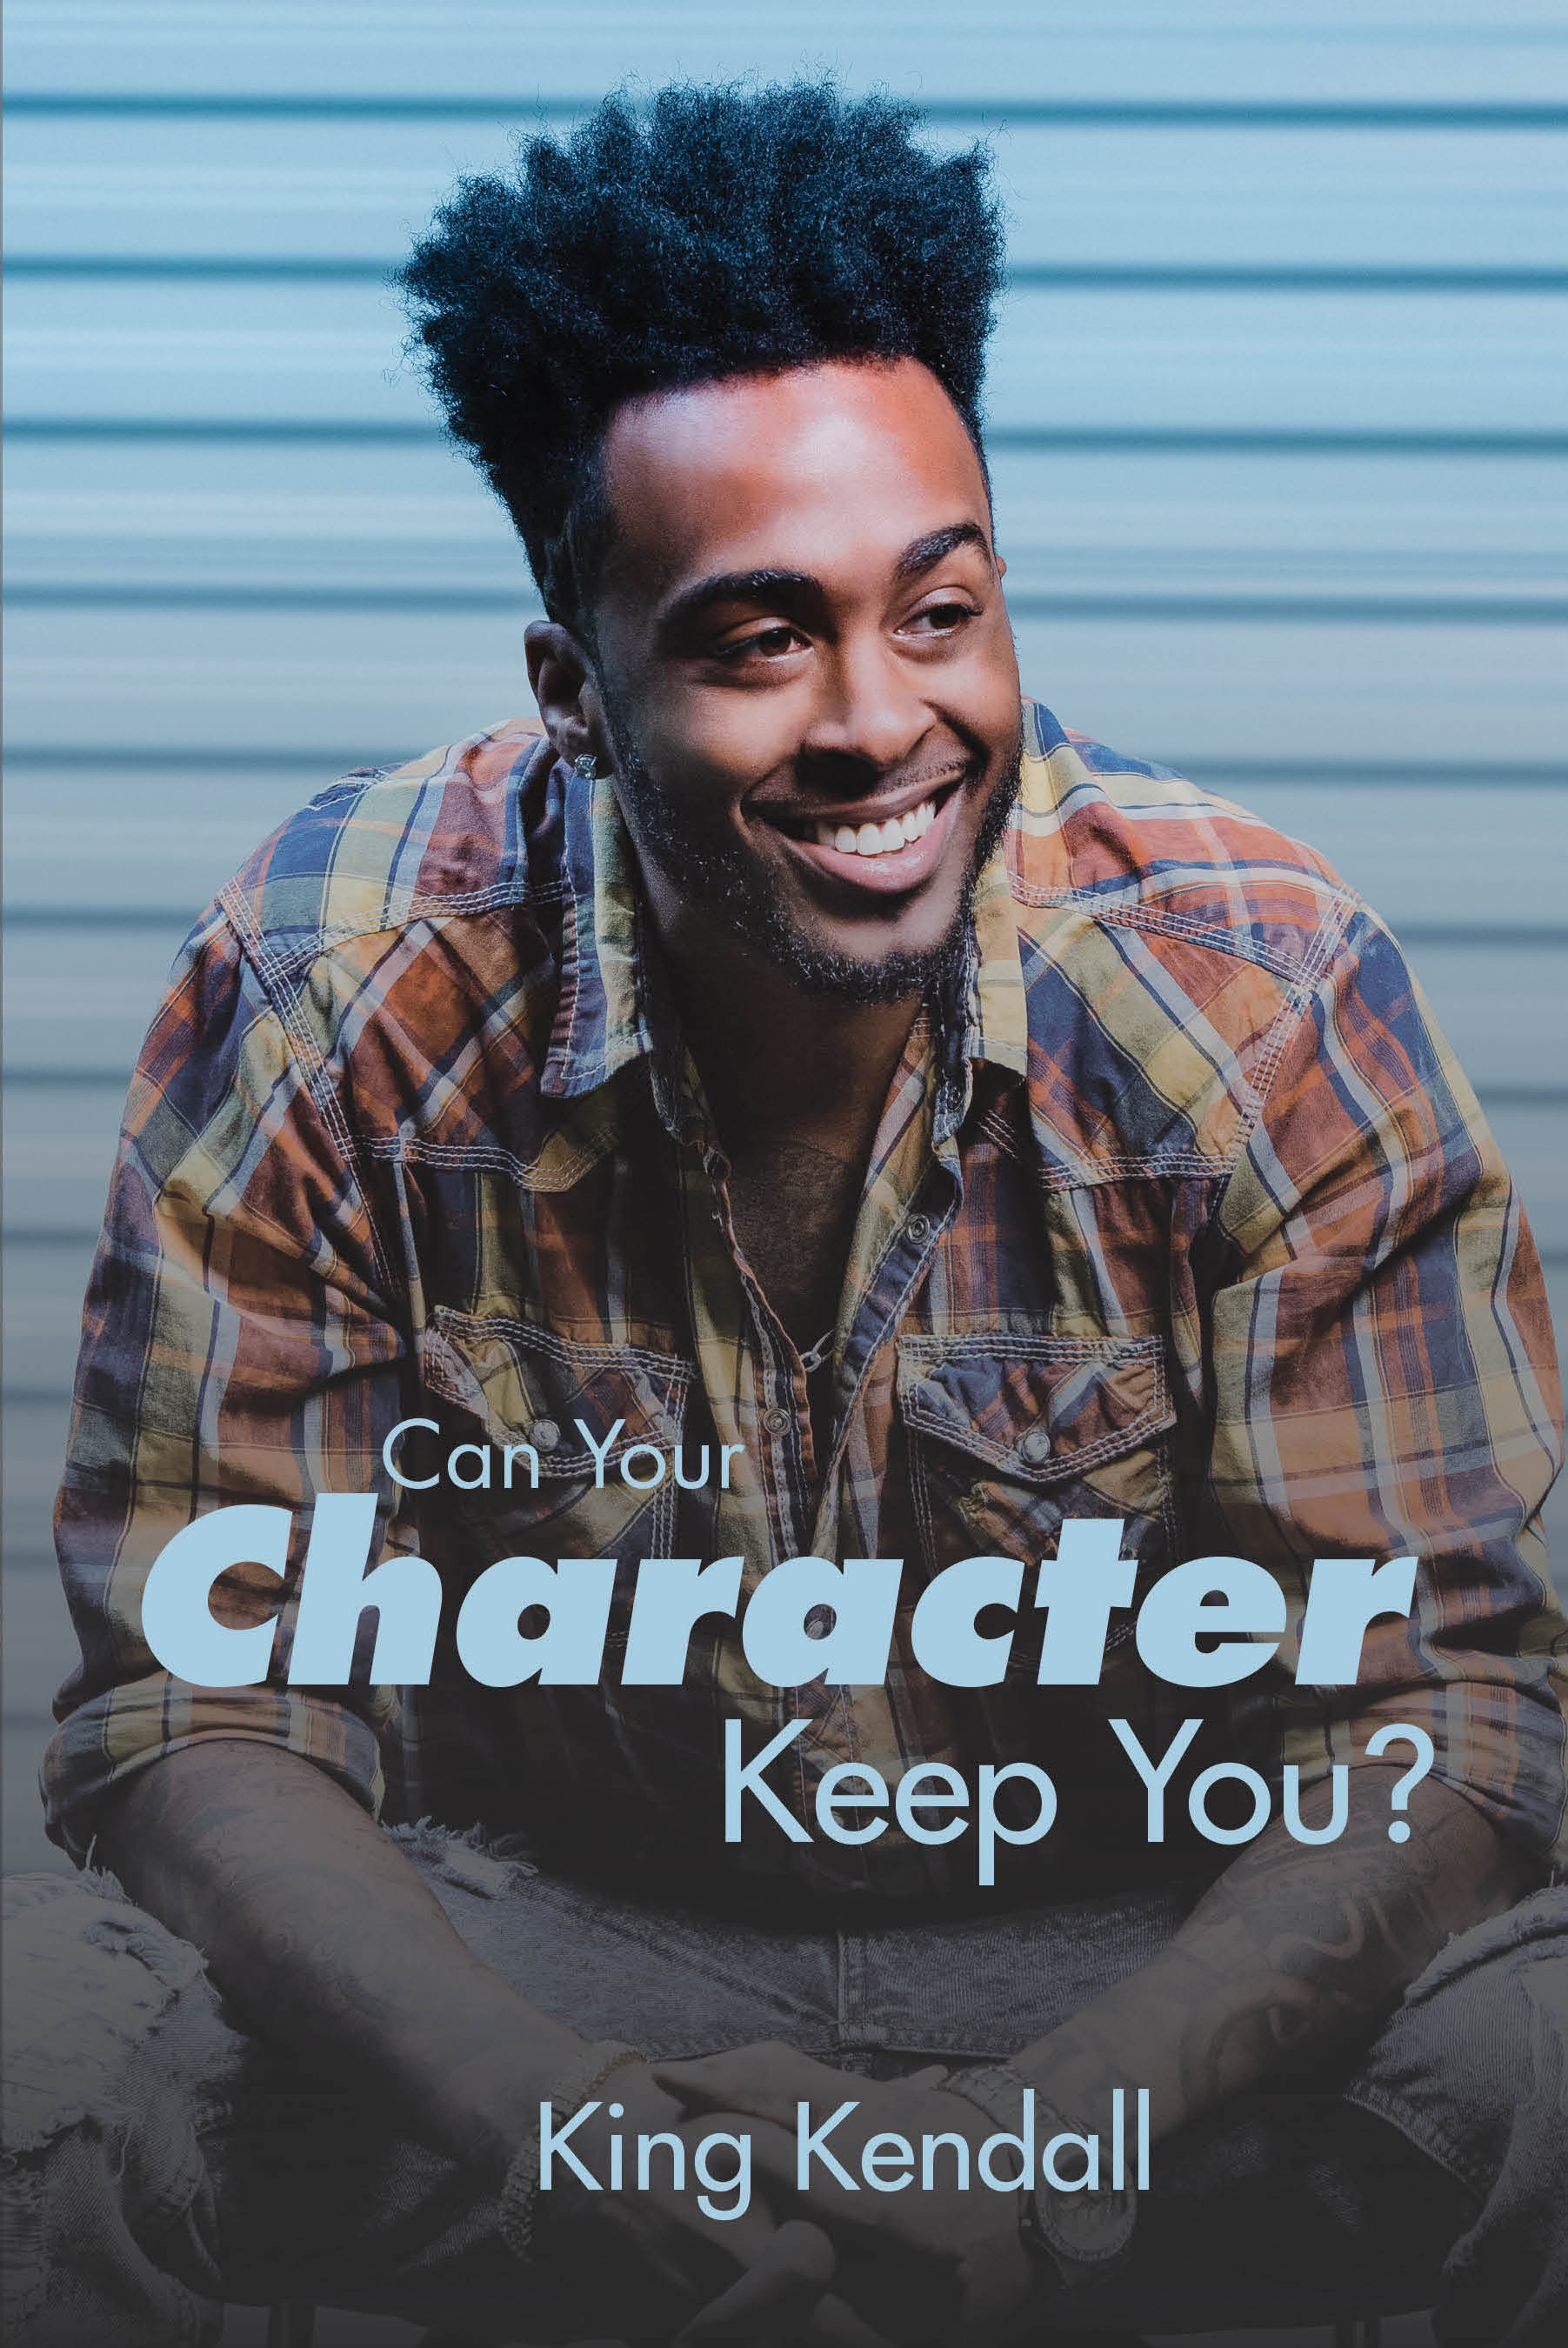 King Kendall's Newest Release - Talented people are easy to find! Lets be honest, It's to find someone with character and integrity! Someone who will do the right thing even when no one is looking! In this book you will unlock key tools in understanding how your character must keep you where your gifts and talents take you! You don't want to be the person with good potential but no follow through! Maybe you are dealing with hurt and pain from your past without realizing it is preventing you from becoming the best you that you can possibly be!Allow me to share how I myself have overcome many of life's most heartbreaking experiences! And how I have made a vow in the midst of temptation on every hand that my character will keep me where my gifts and talents take me!